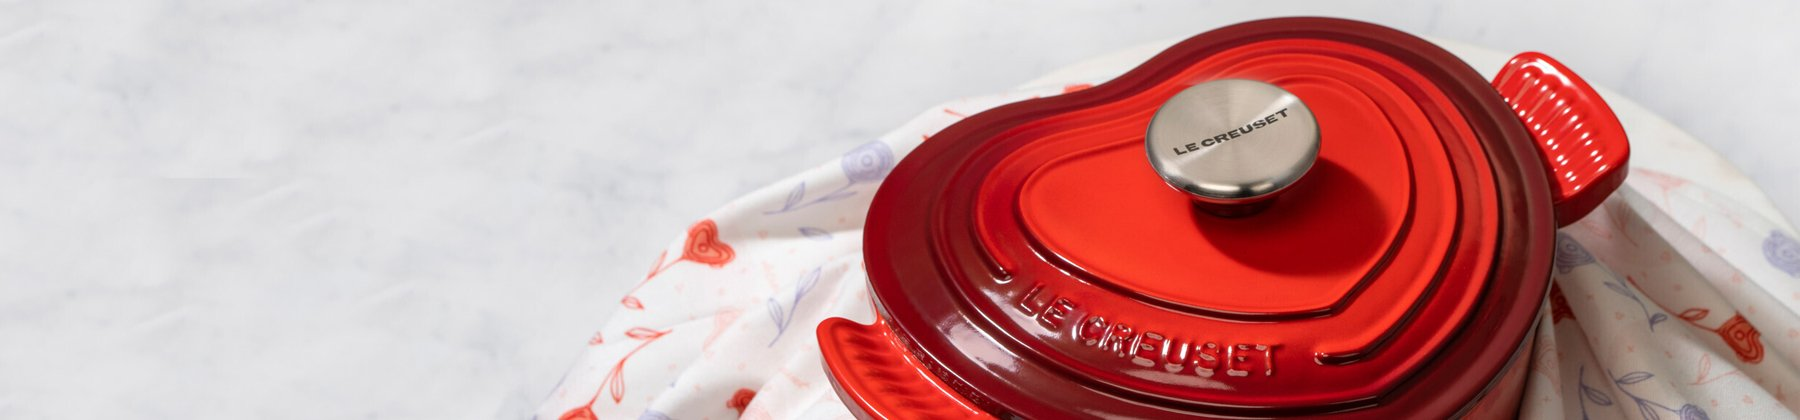 Le Creuset cerise red french oven, shaped like a heart.